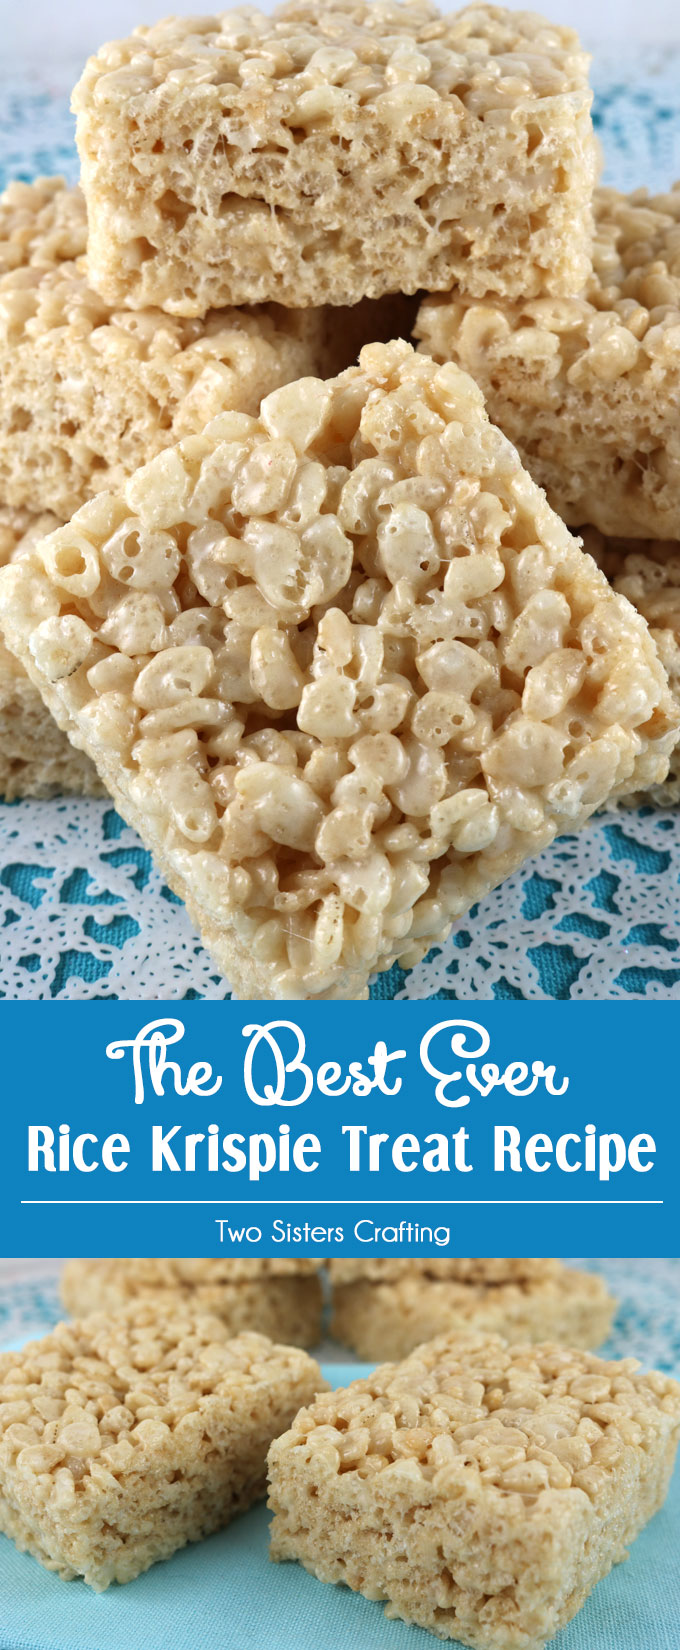 The Best Ever Rice Krispie Treat Recipe - Two Sisters